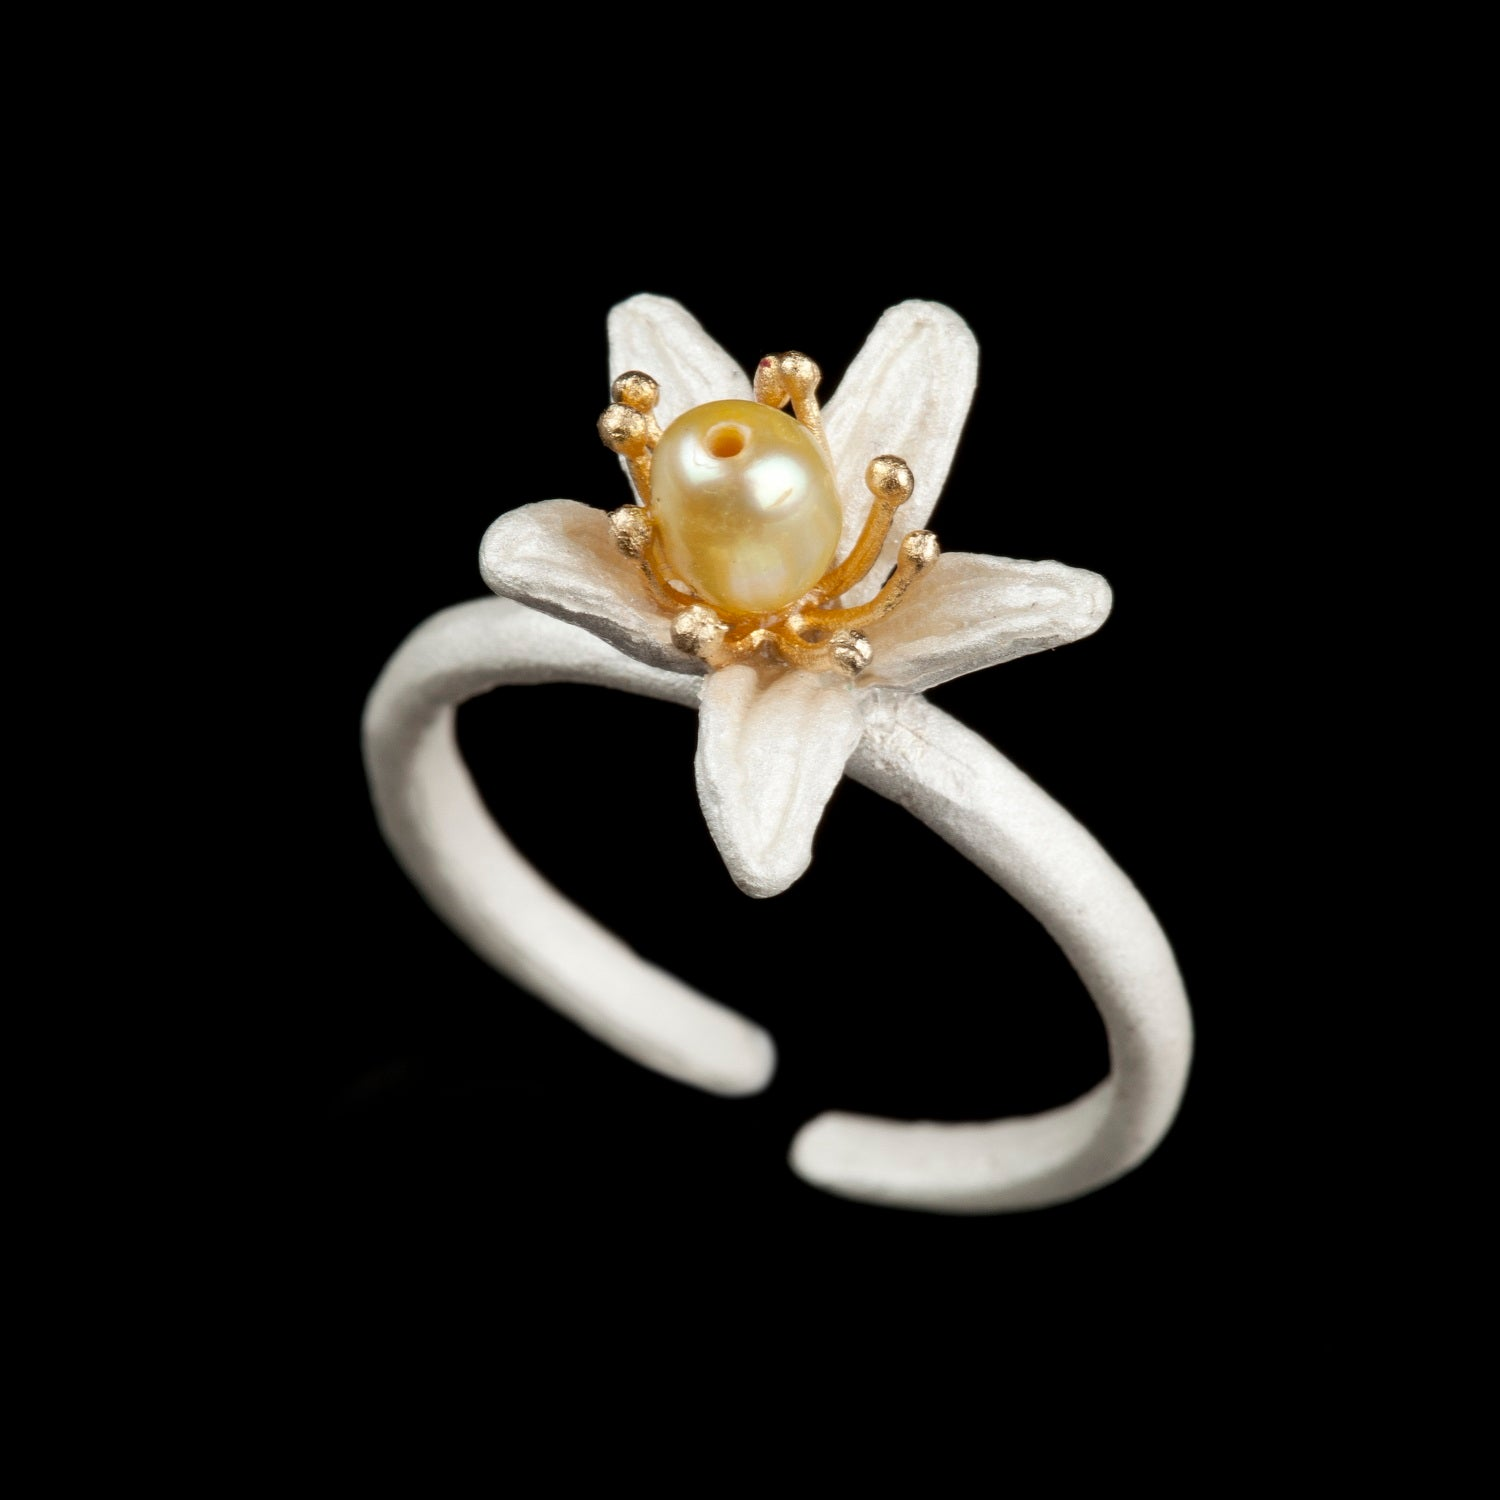 Orange Blossom Ring - Single Flower